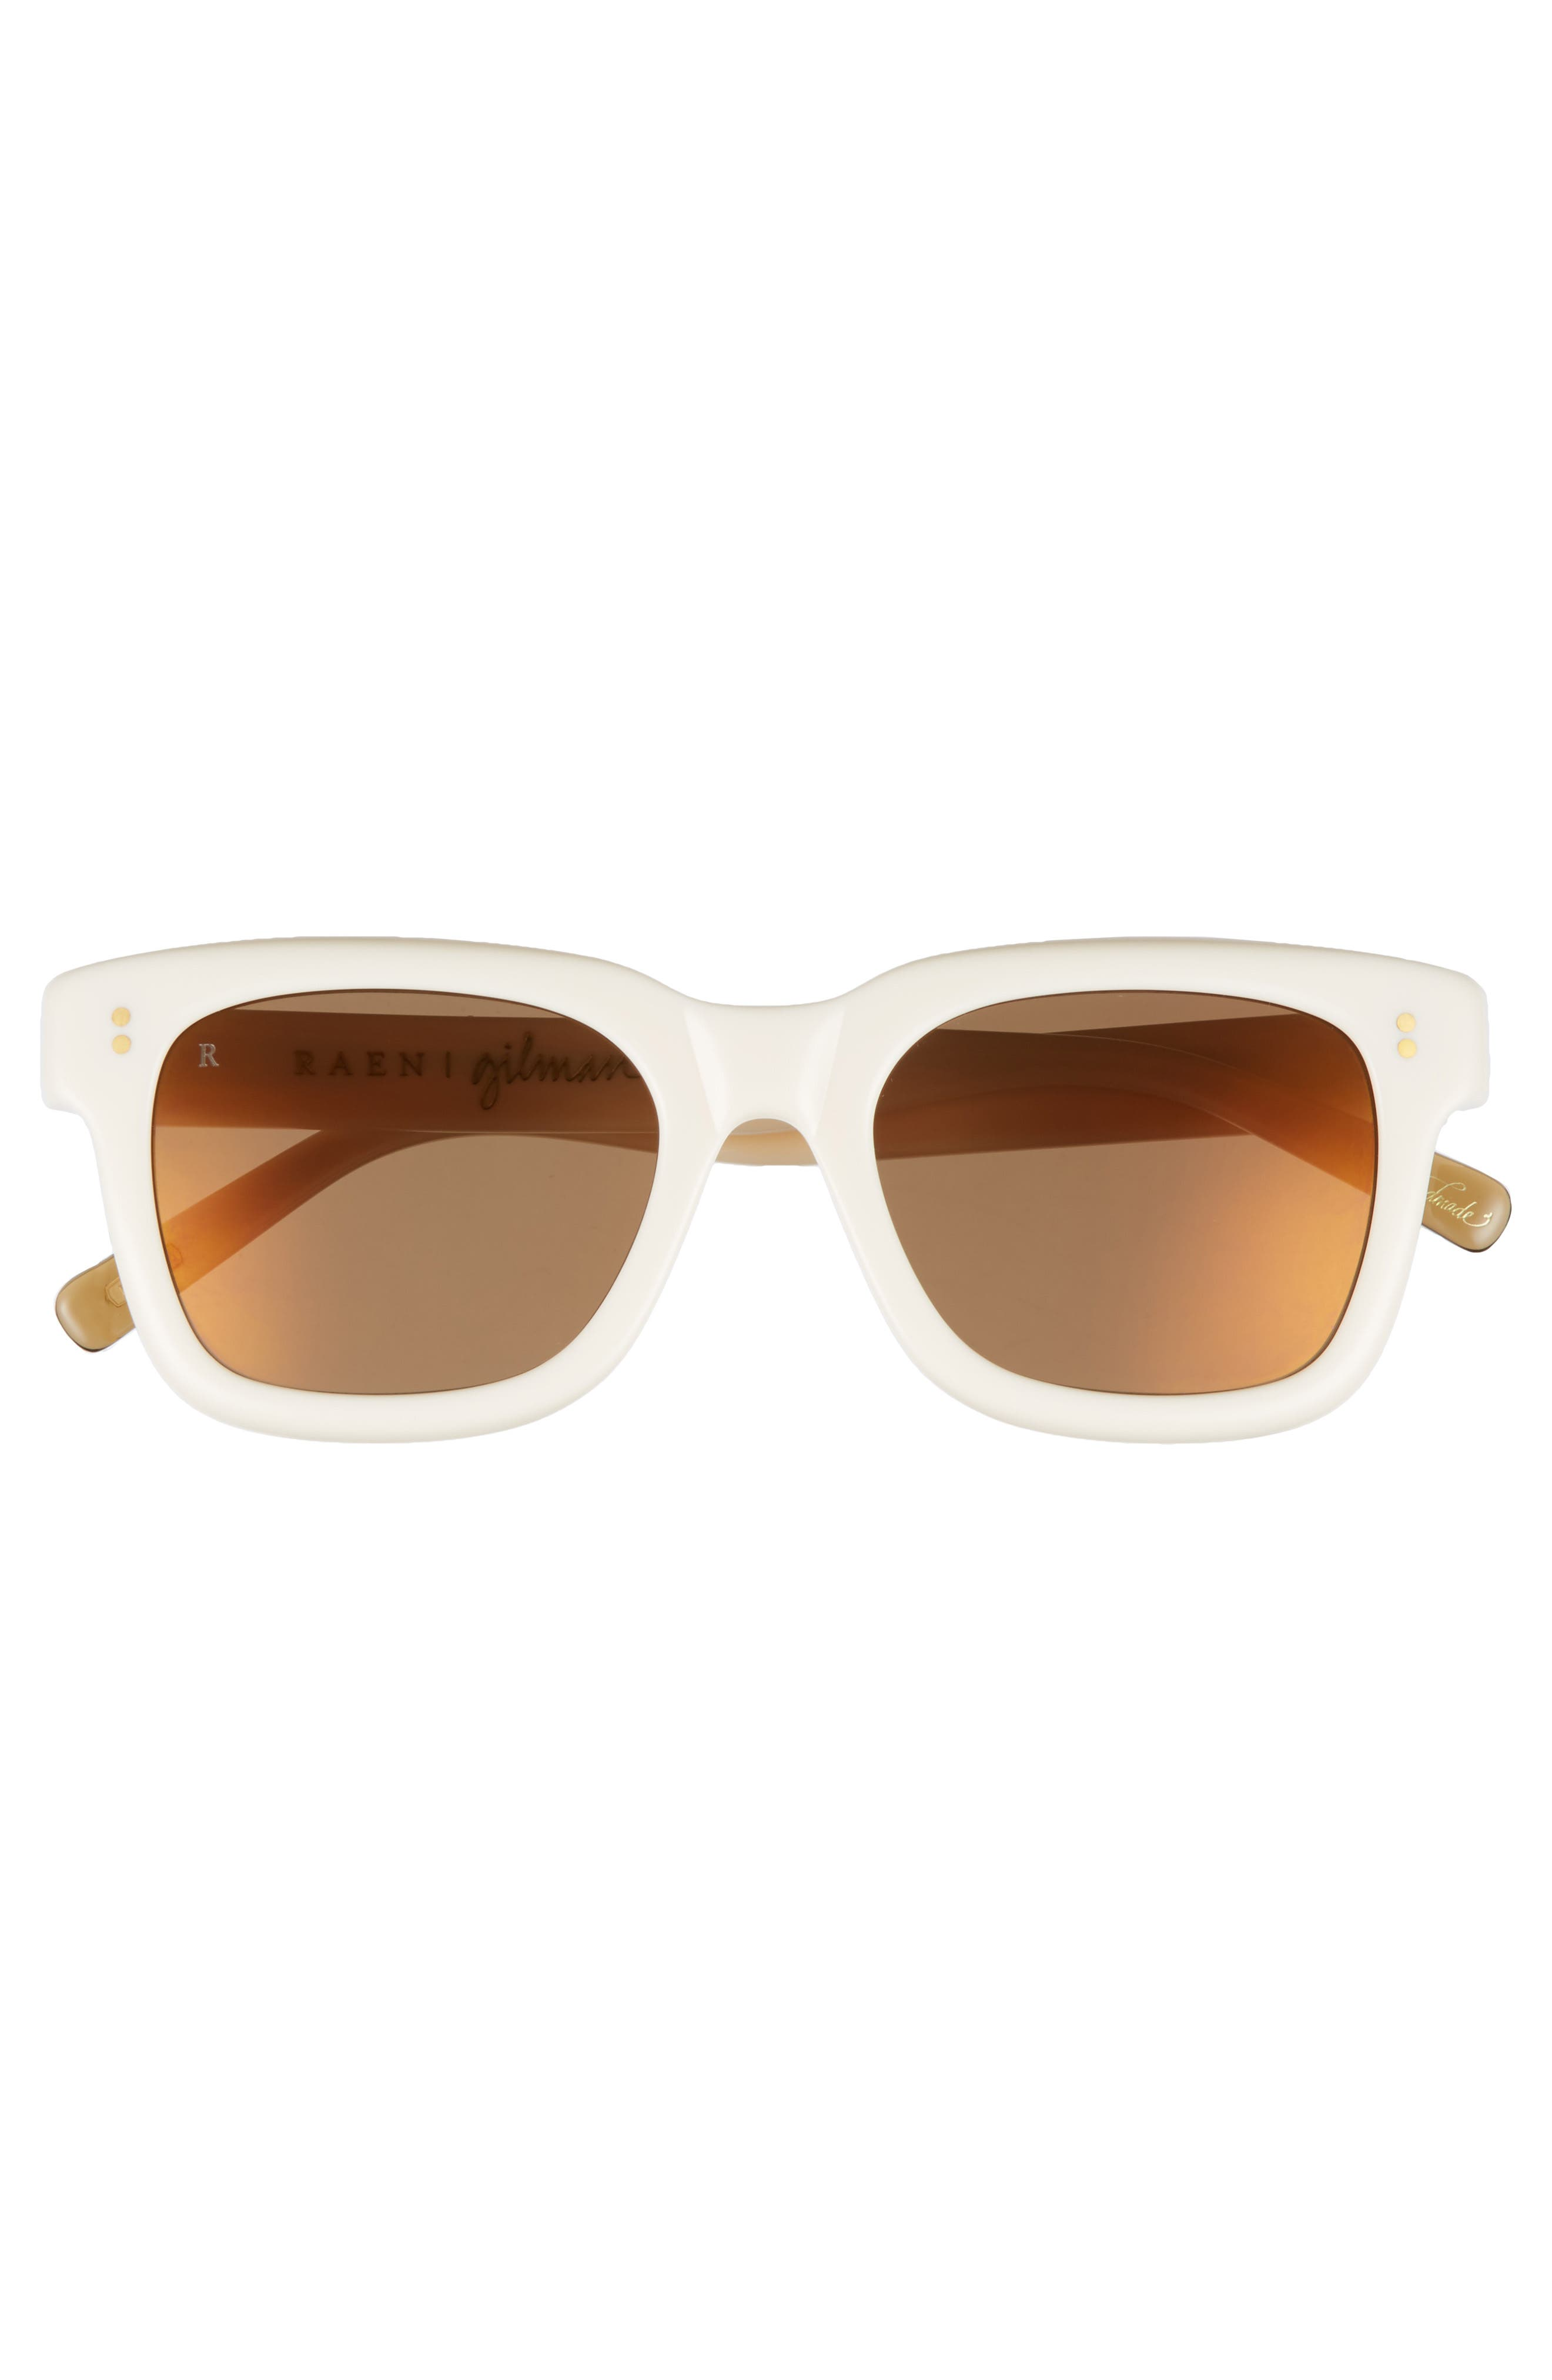 Gilman 52mm Mirrored Polarized Sunglasses,                             Alternate thumbnail 2, color,                             Rose/ Brown Silver Mirror